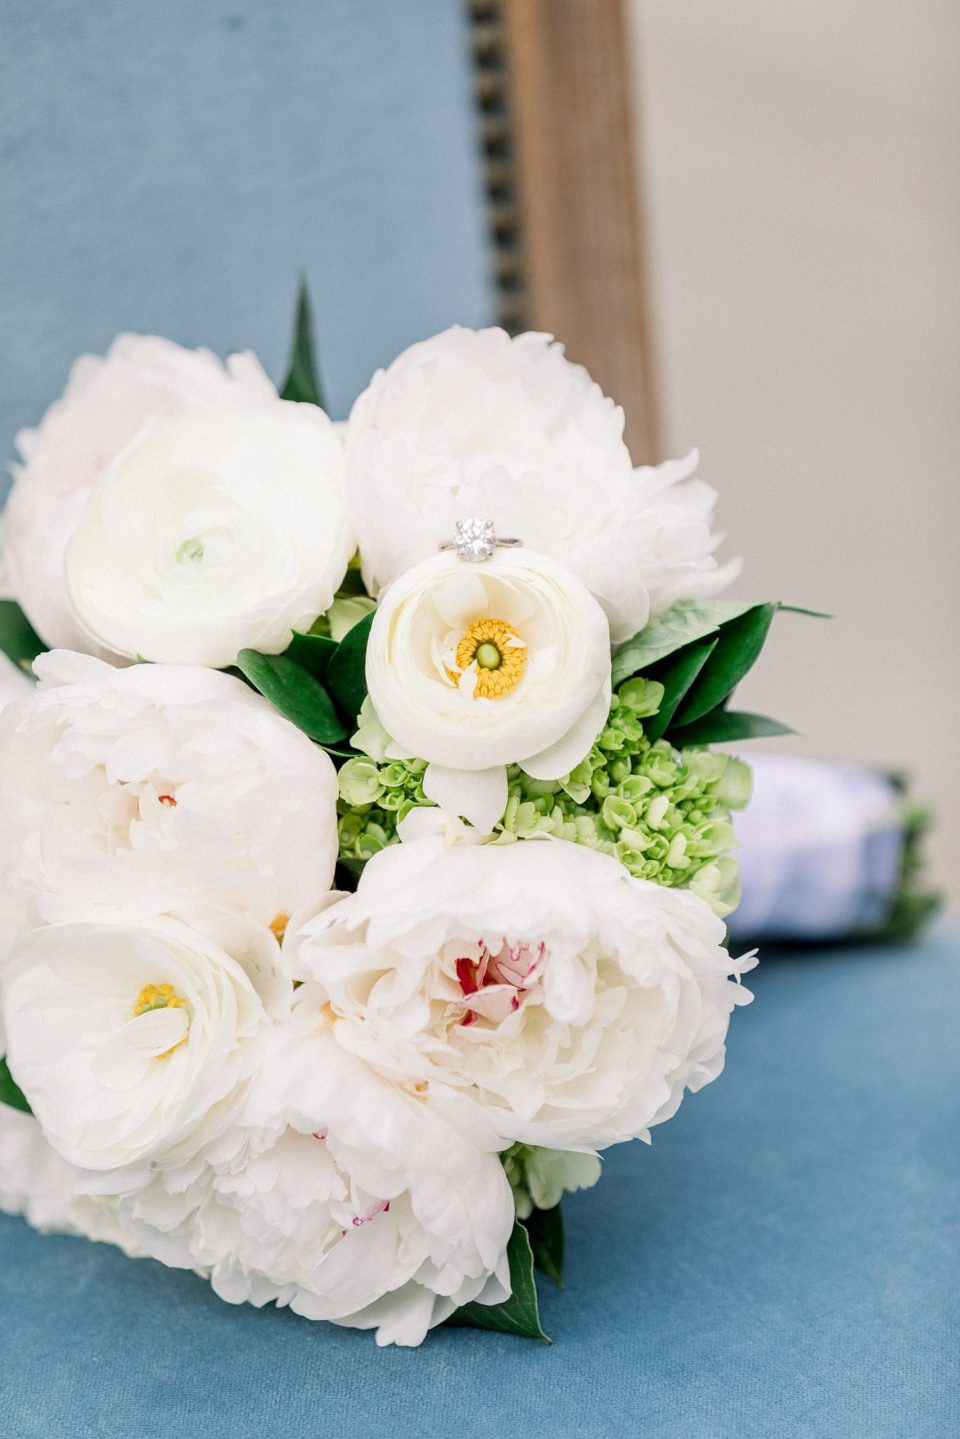 White wedding bouquet with solitaire ring on top